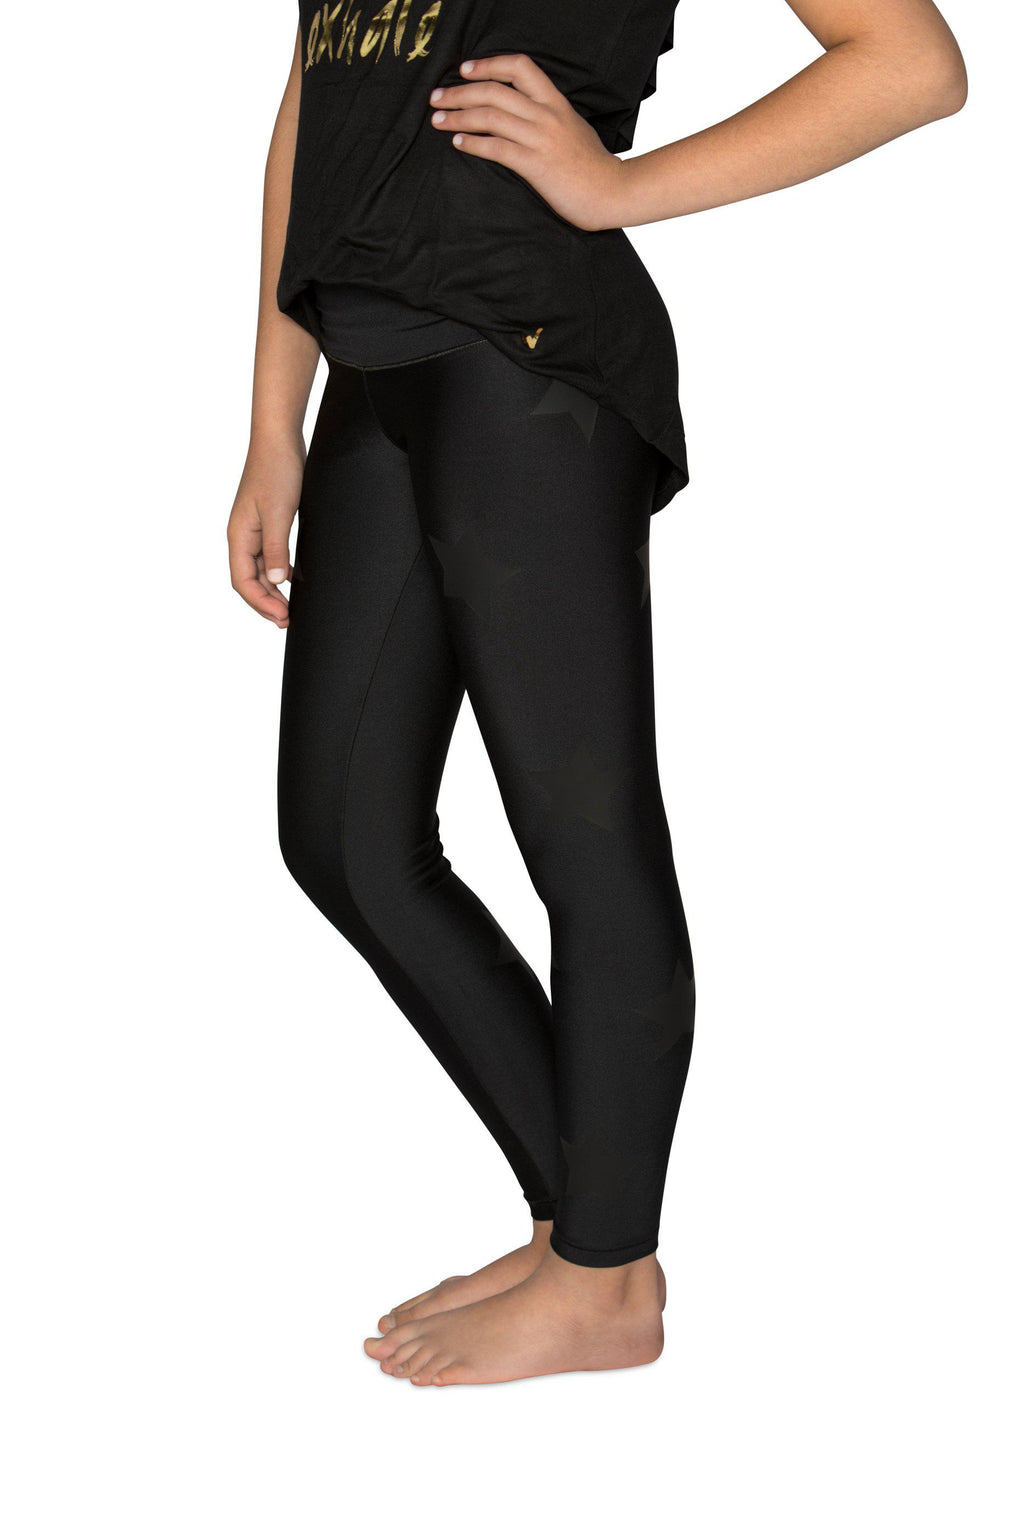 Stars Black Leggings - Fanilu